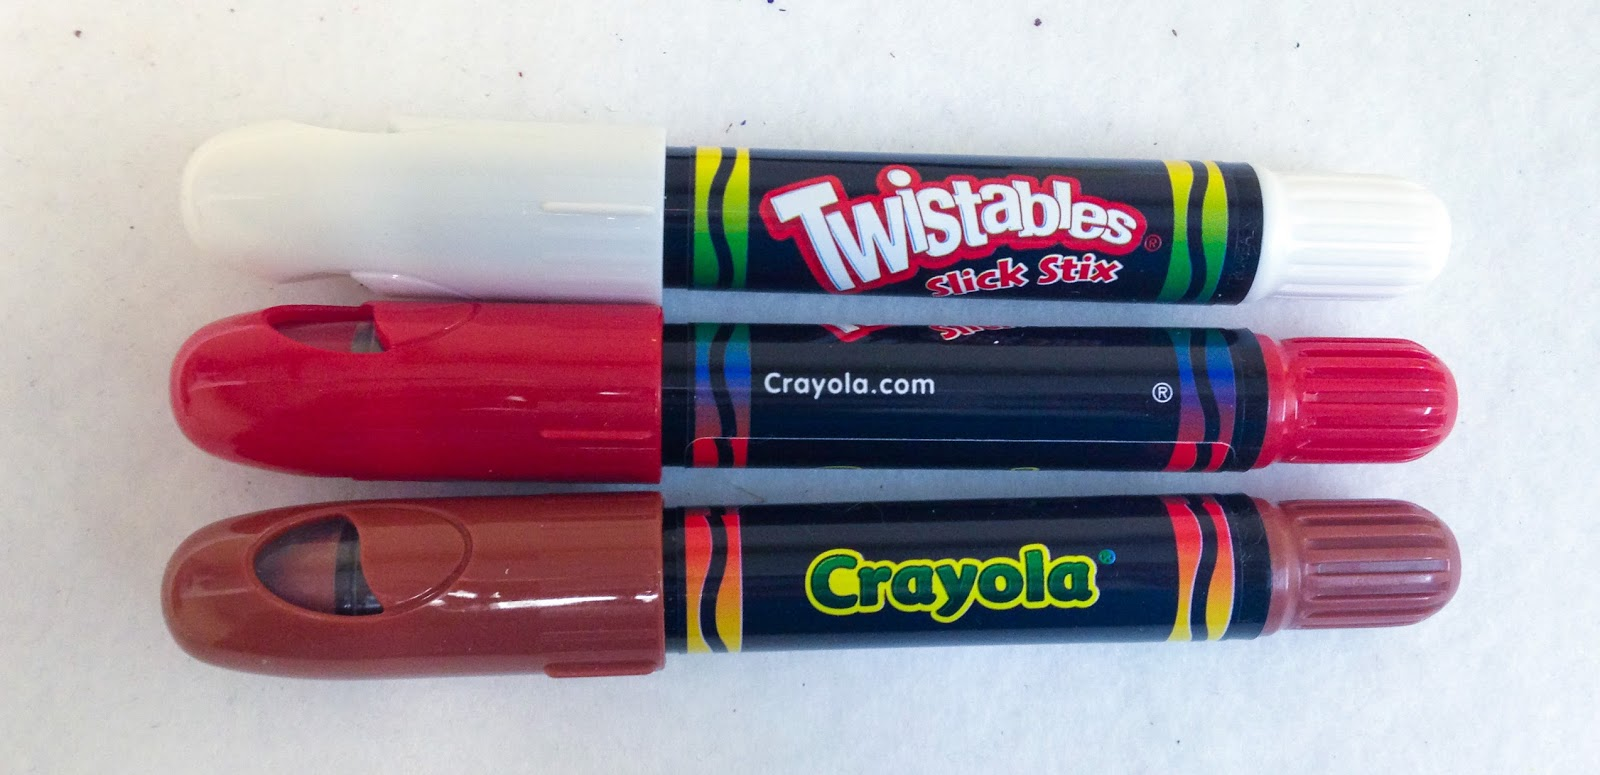 12 Count Crayola Twistable Slick Stix Whats Inside The Box - Crayola-slick-stix